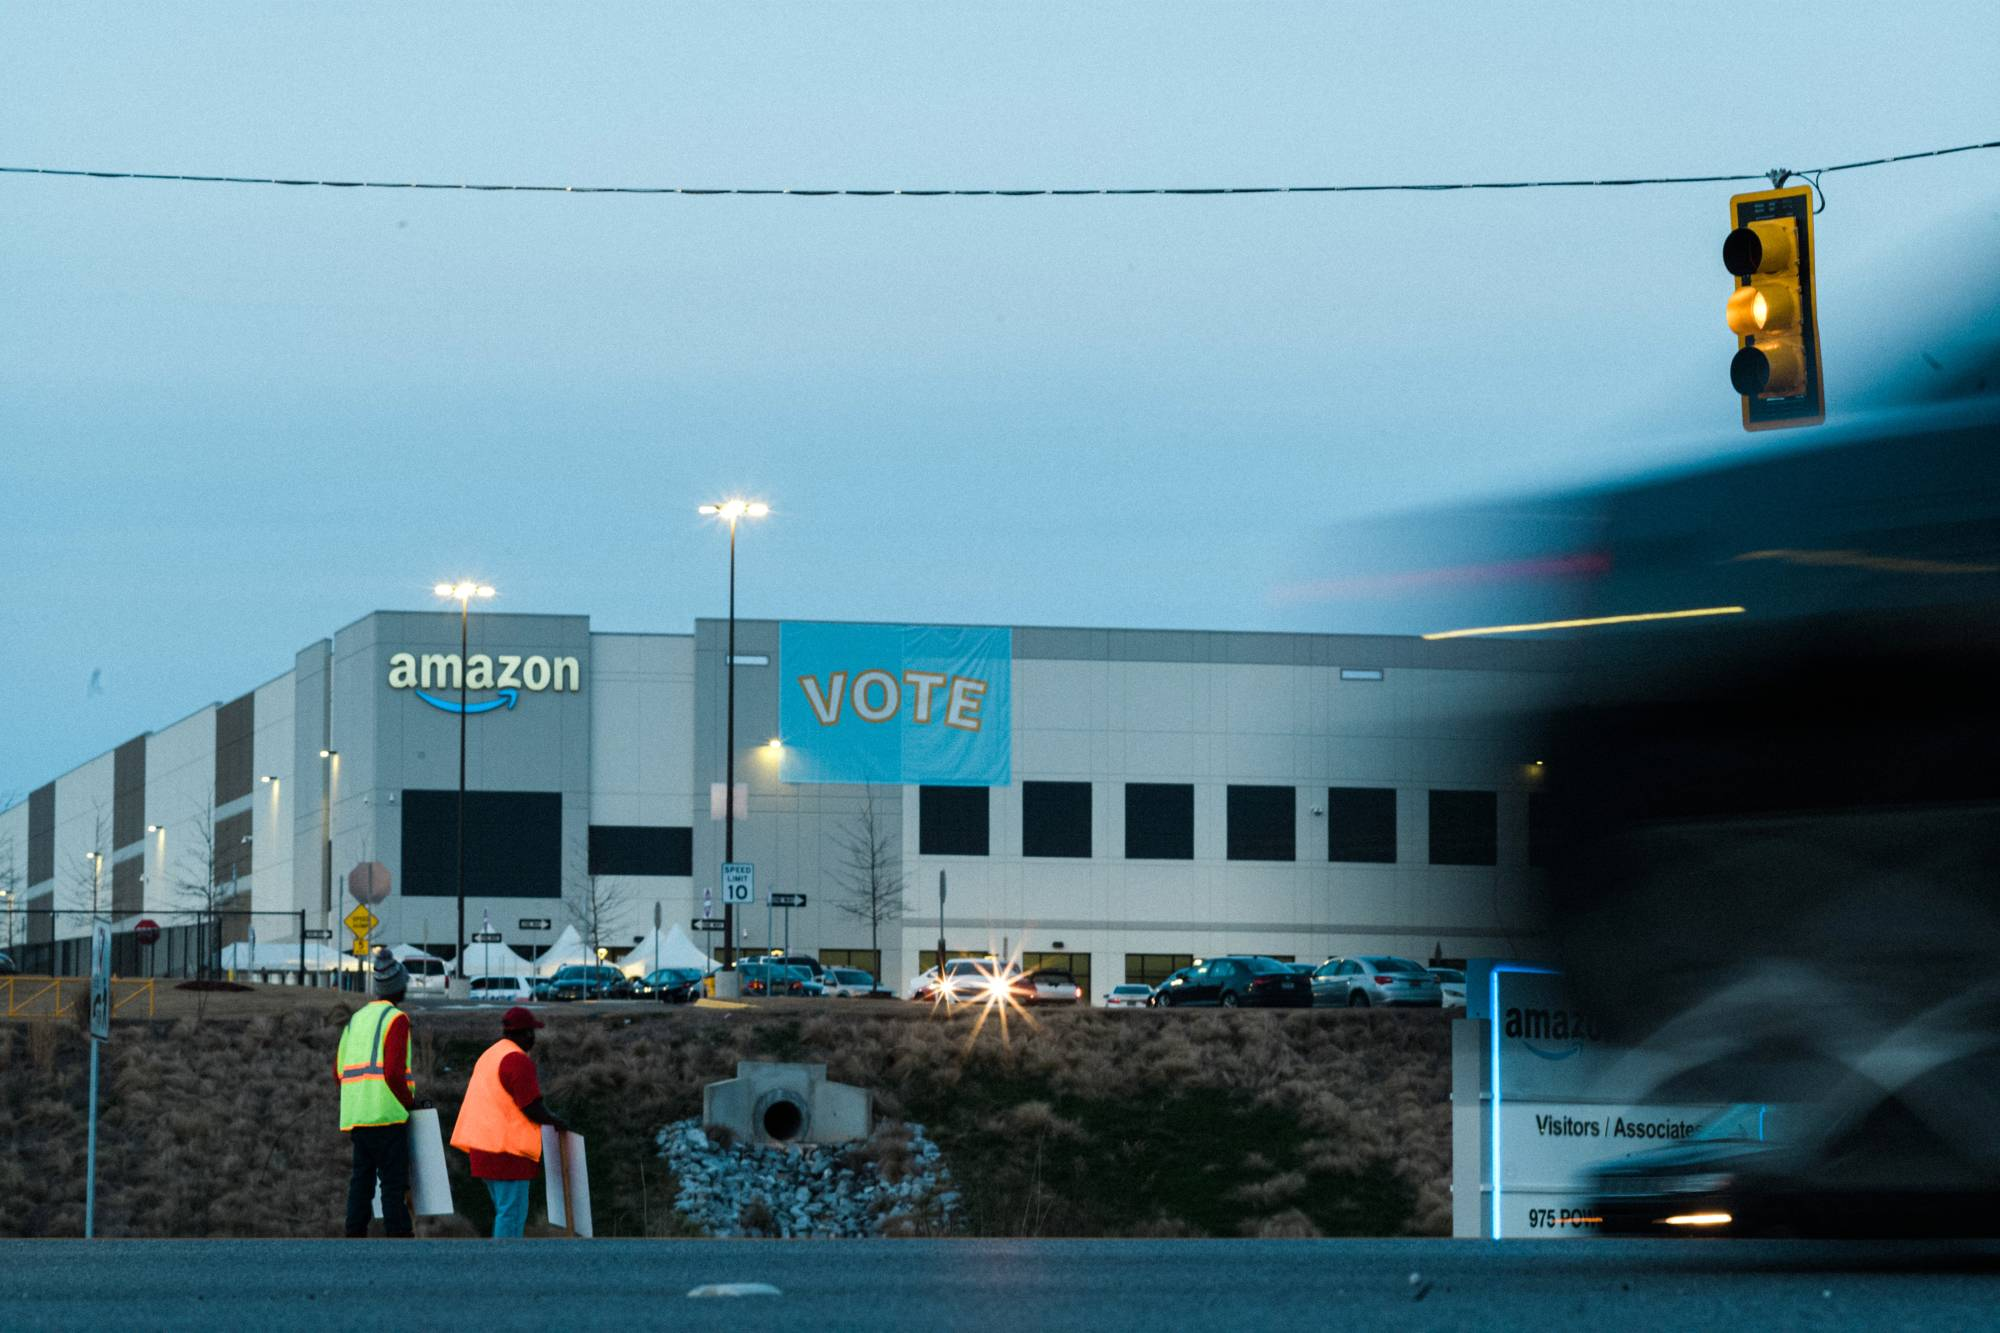 Labor organizers outside an Amazon warehouse in Bessemer | BOB MILLER / THE NEW YORK TIMES